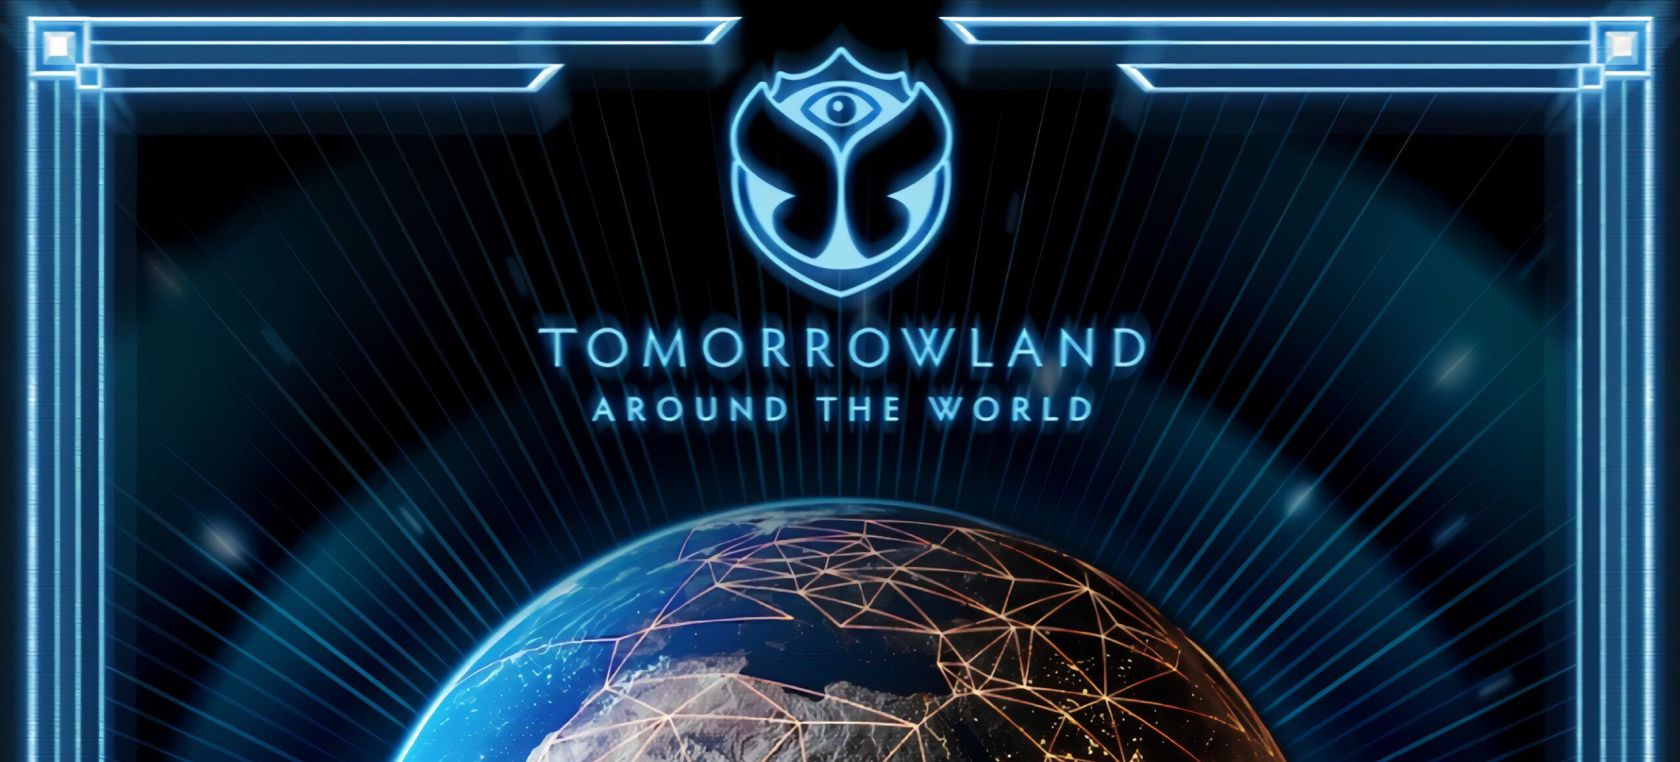 ¡Concurso! Acude al Tomorrowland Around The World de la mano de LOS40 Dance